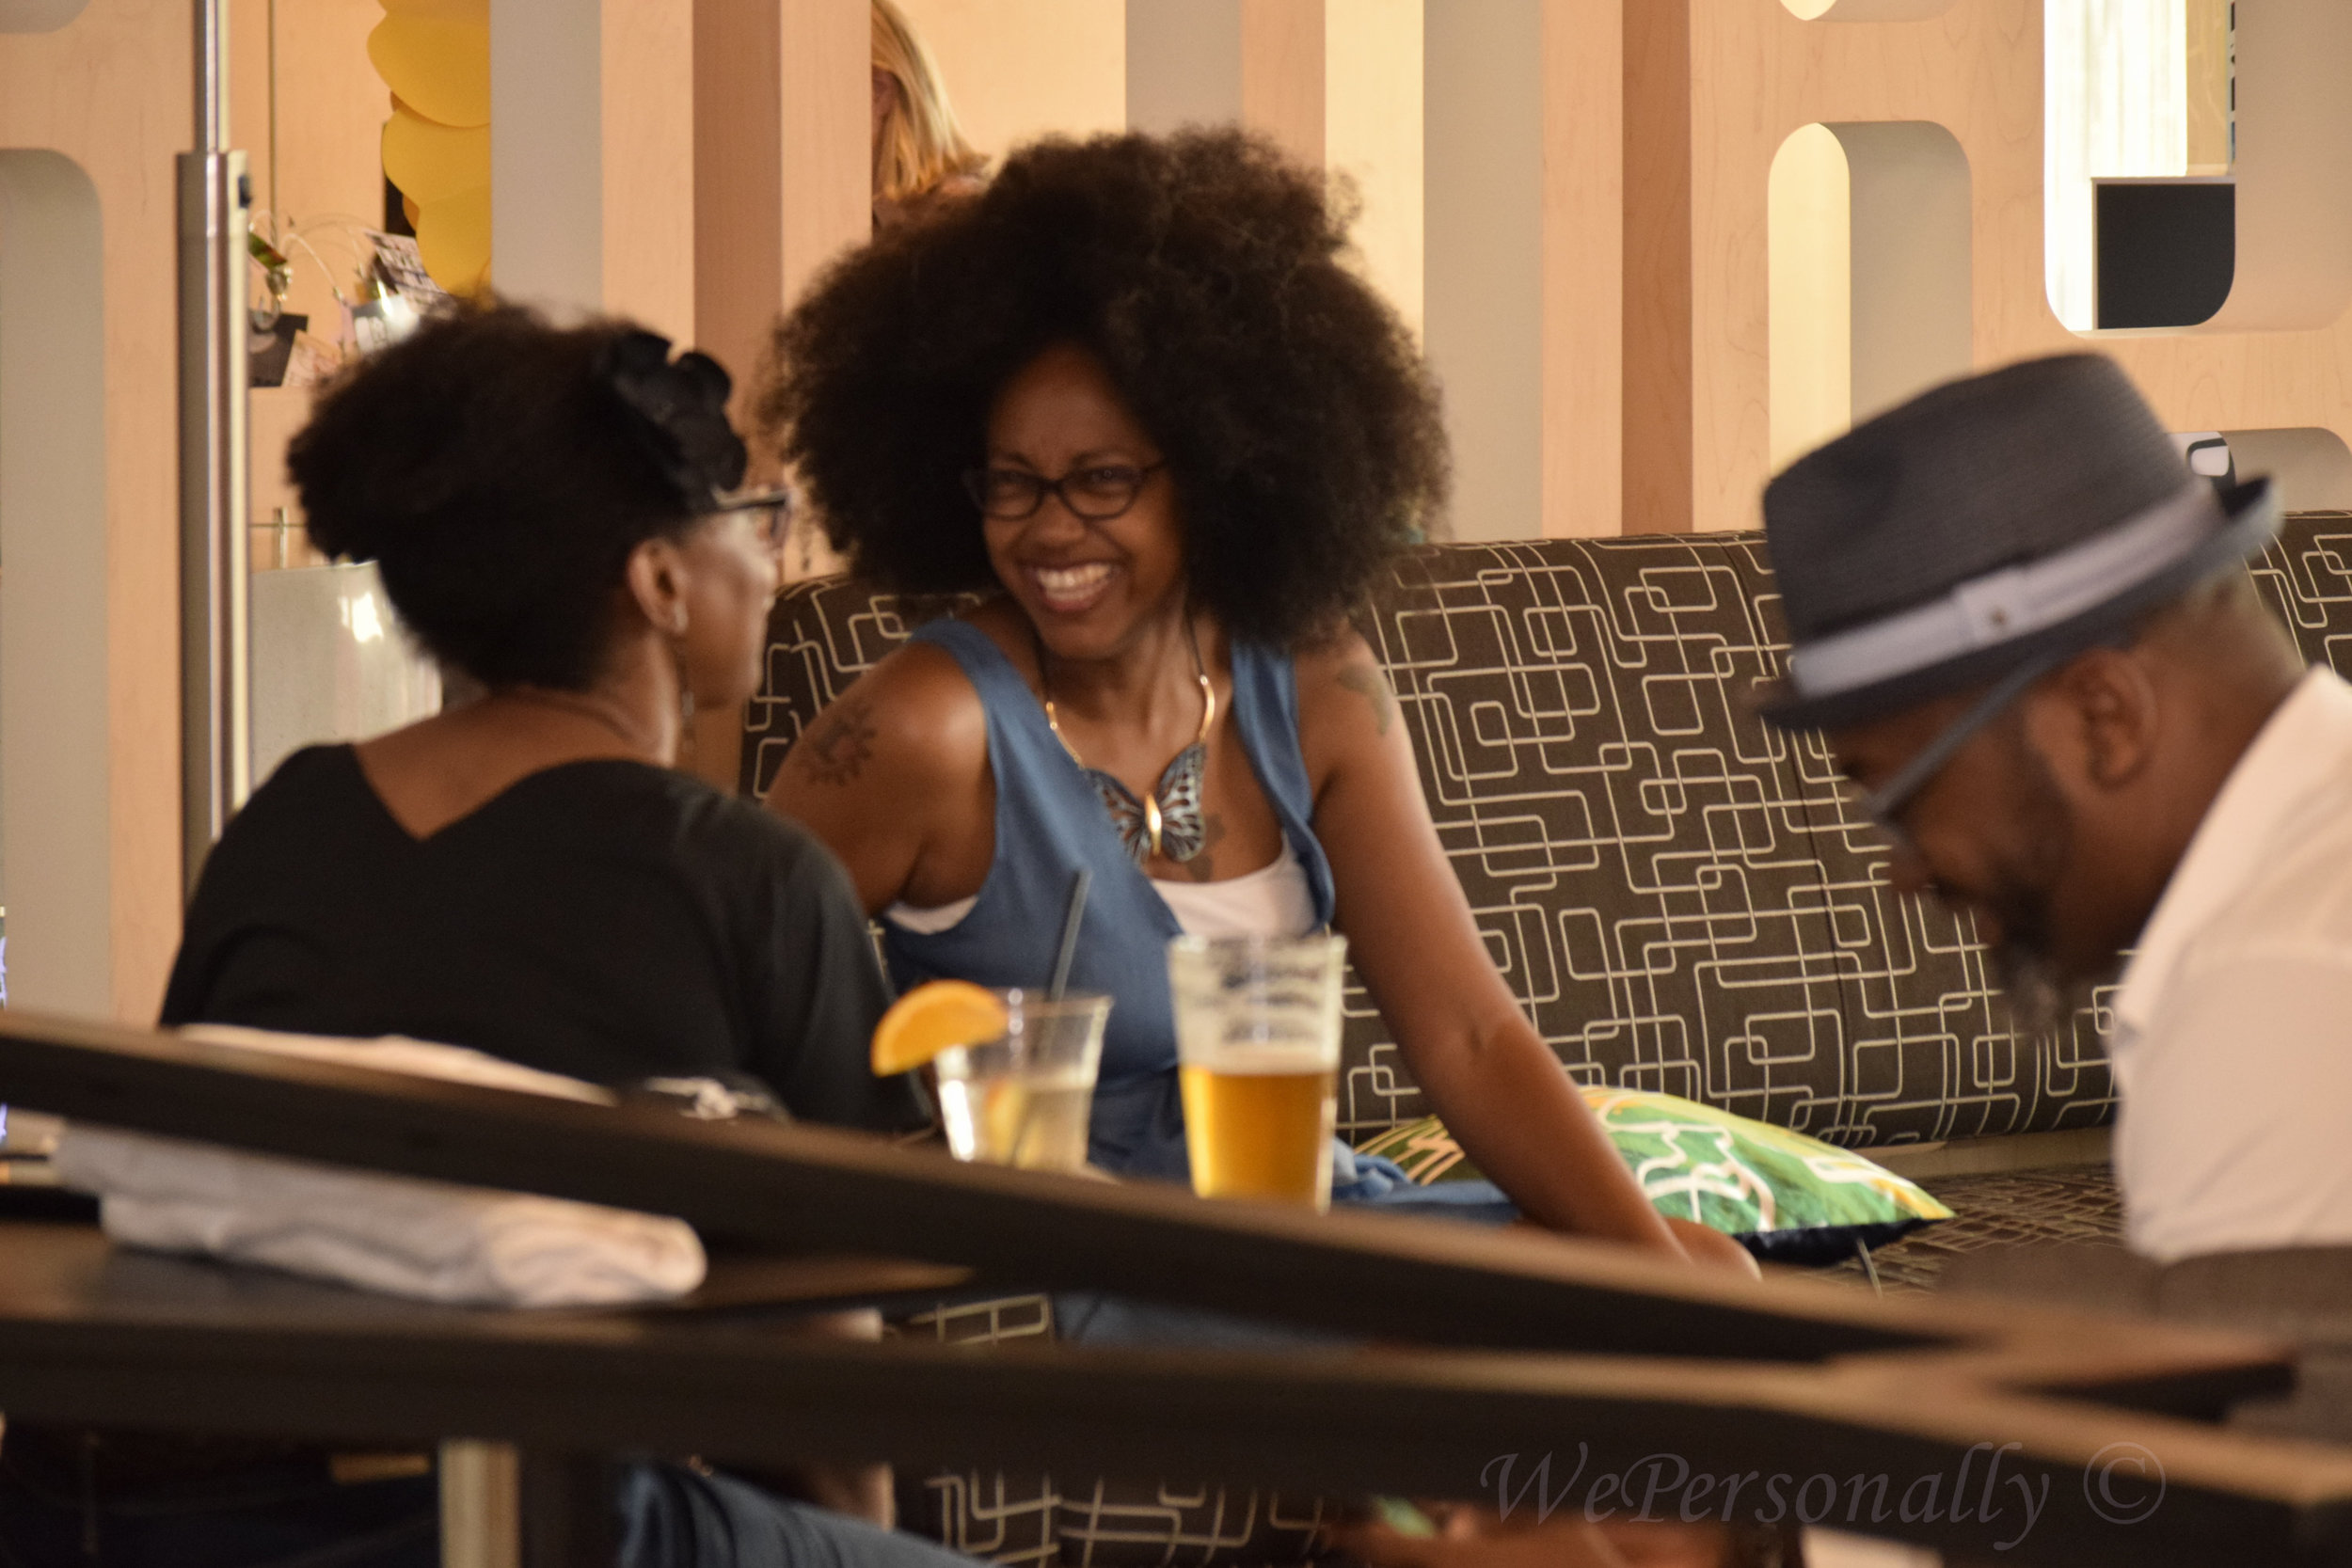 All smiles from the beautiful Adrienne Charleston and yes that's the fabulous fro you saw at the Common concert on stage!